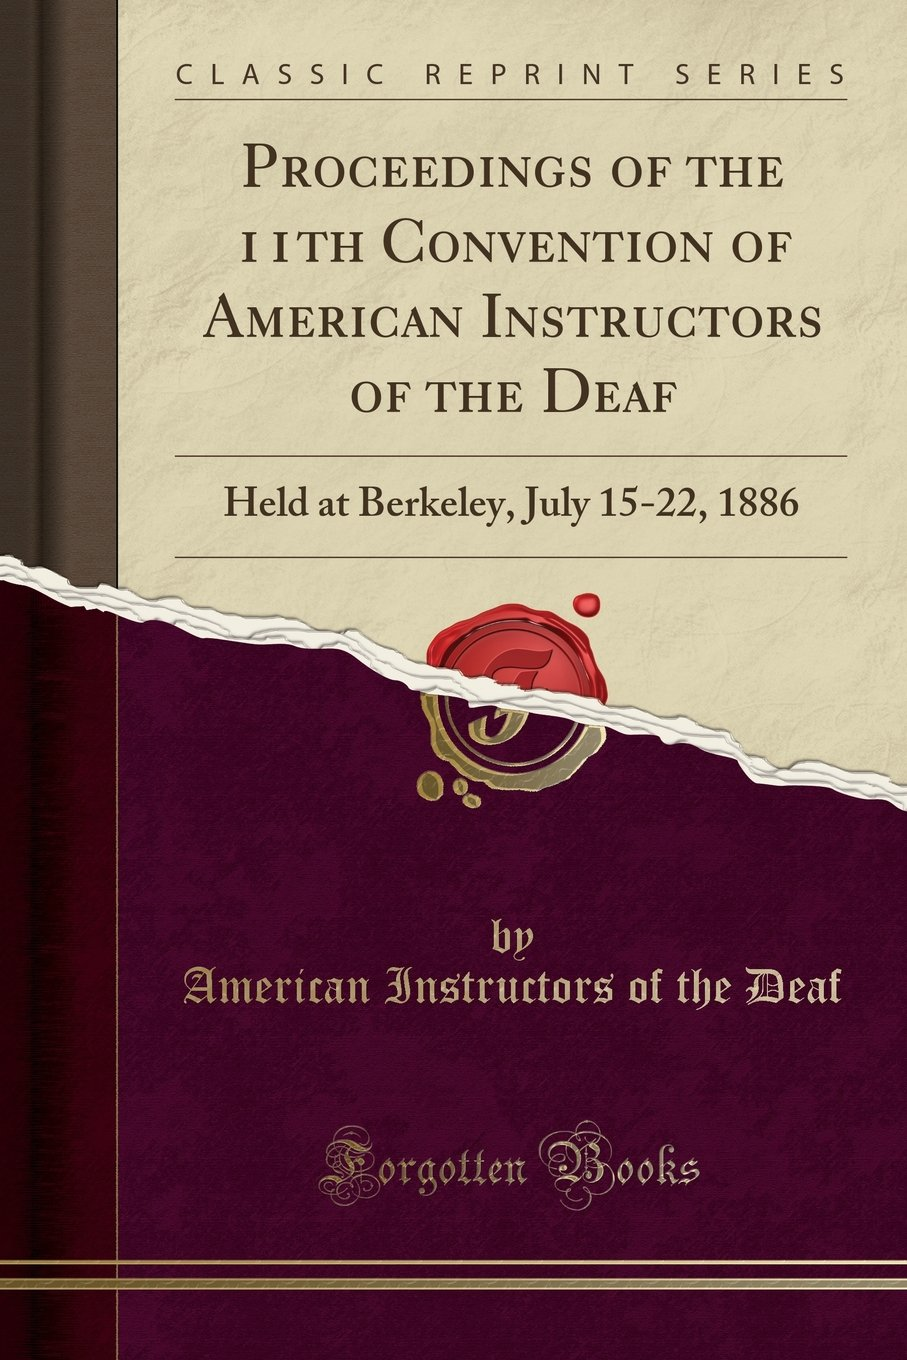 Download Proceedings of the 11th Convention of American Instructors of the Deaf: Held at Berkeley, July 15-22, 1886 (Classic Reprint) PDF